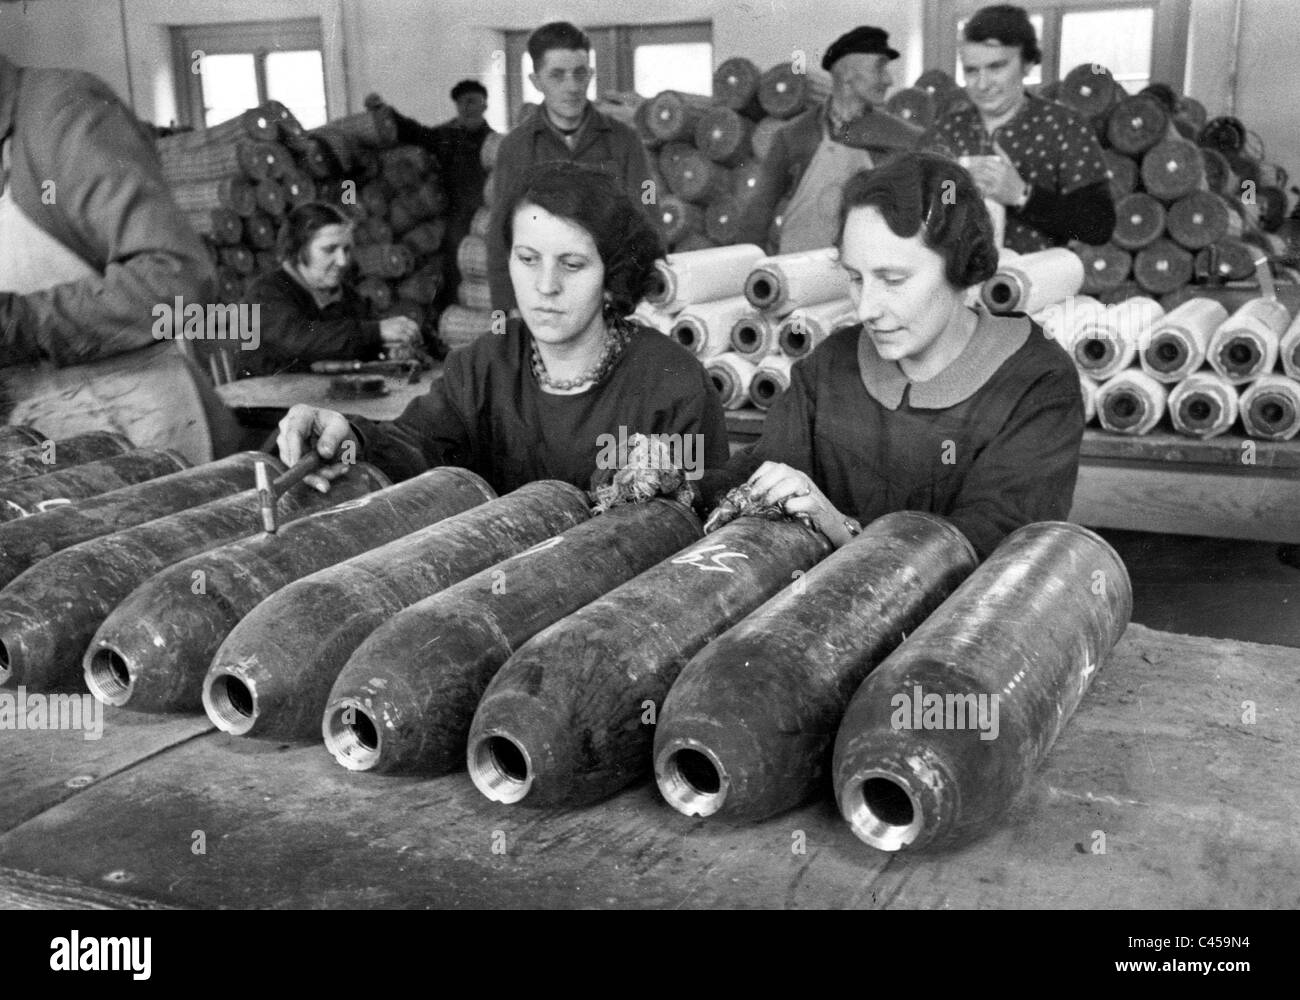 Women in the armaments industry, 1943 - Stock Image